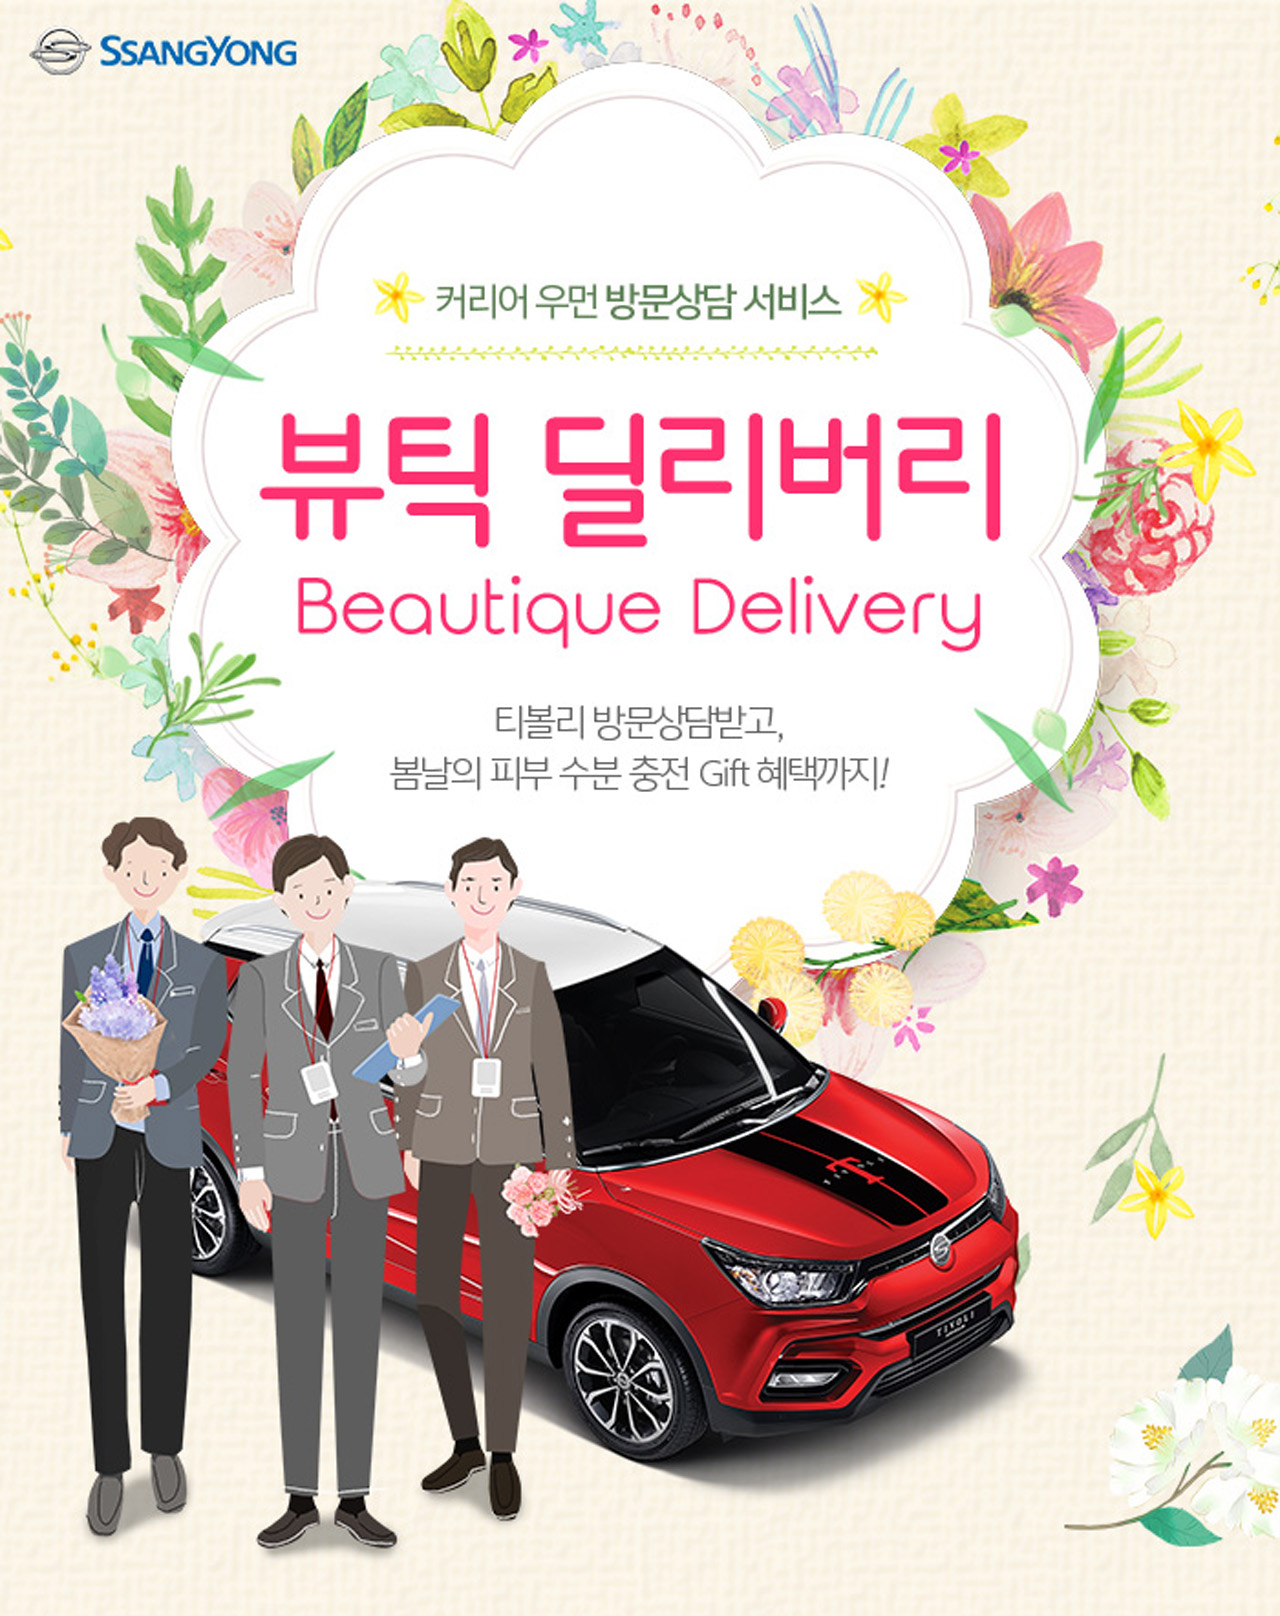 20180411_Beautique_Delivery